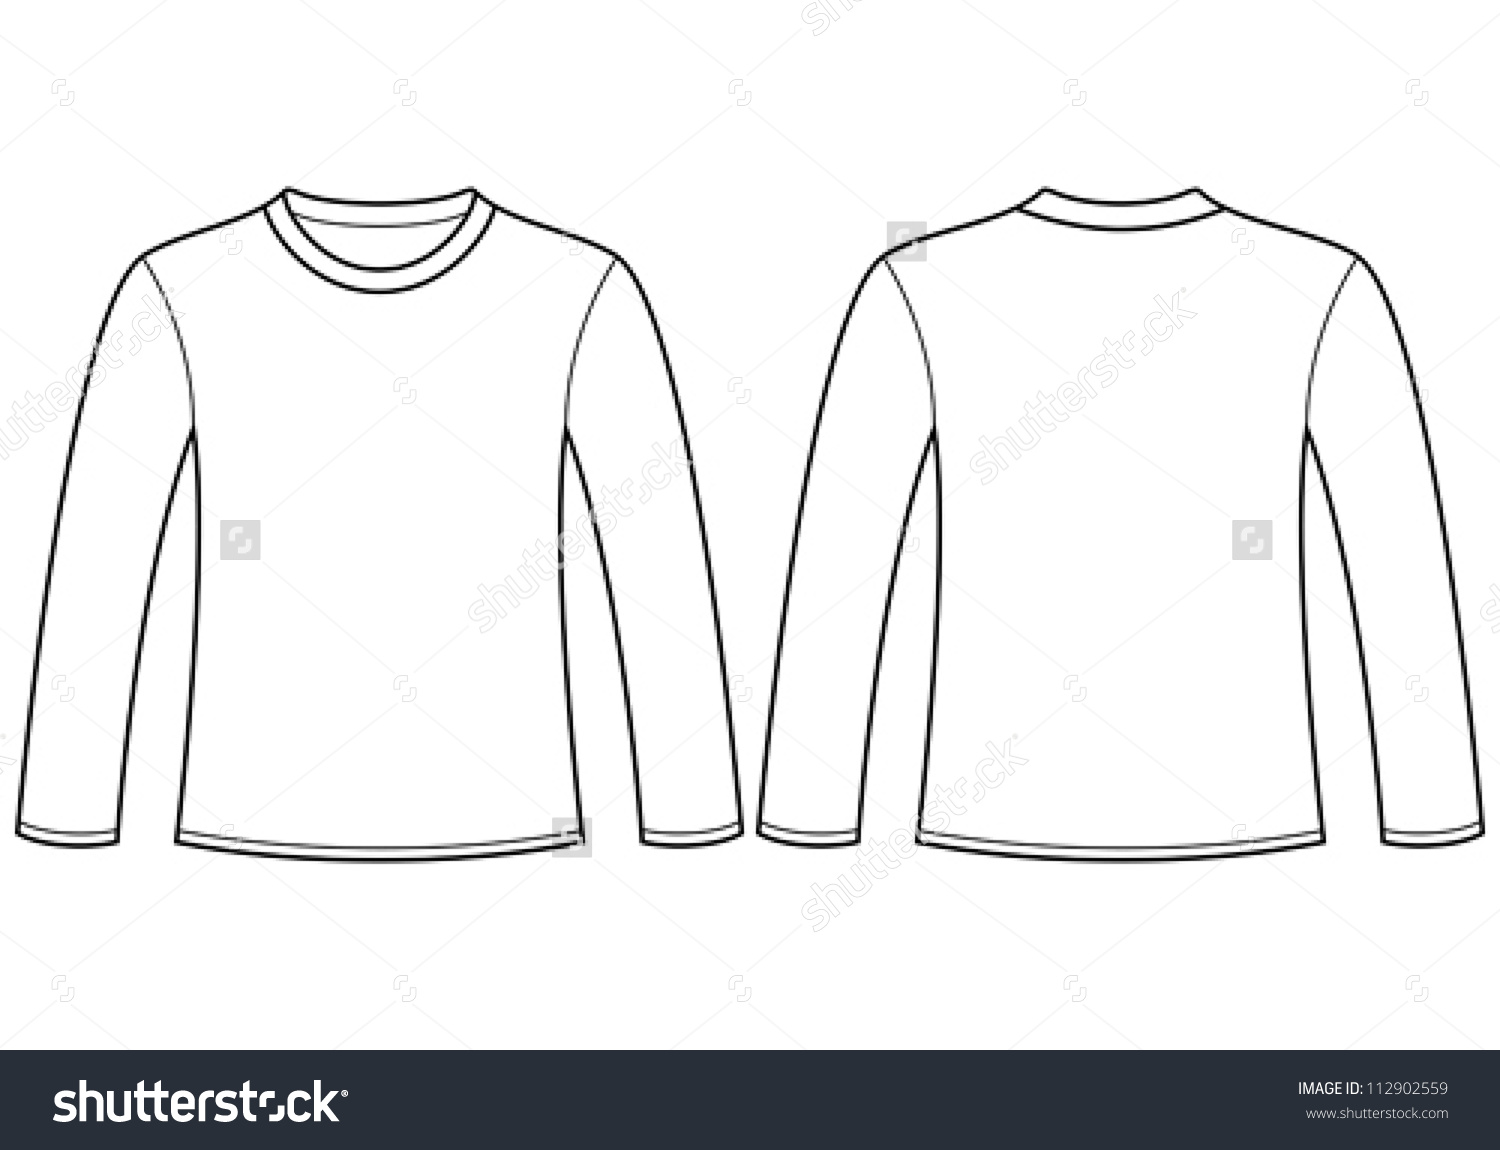 Free T Shirt Vector Art At Getdrawings Free For Personal Use